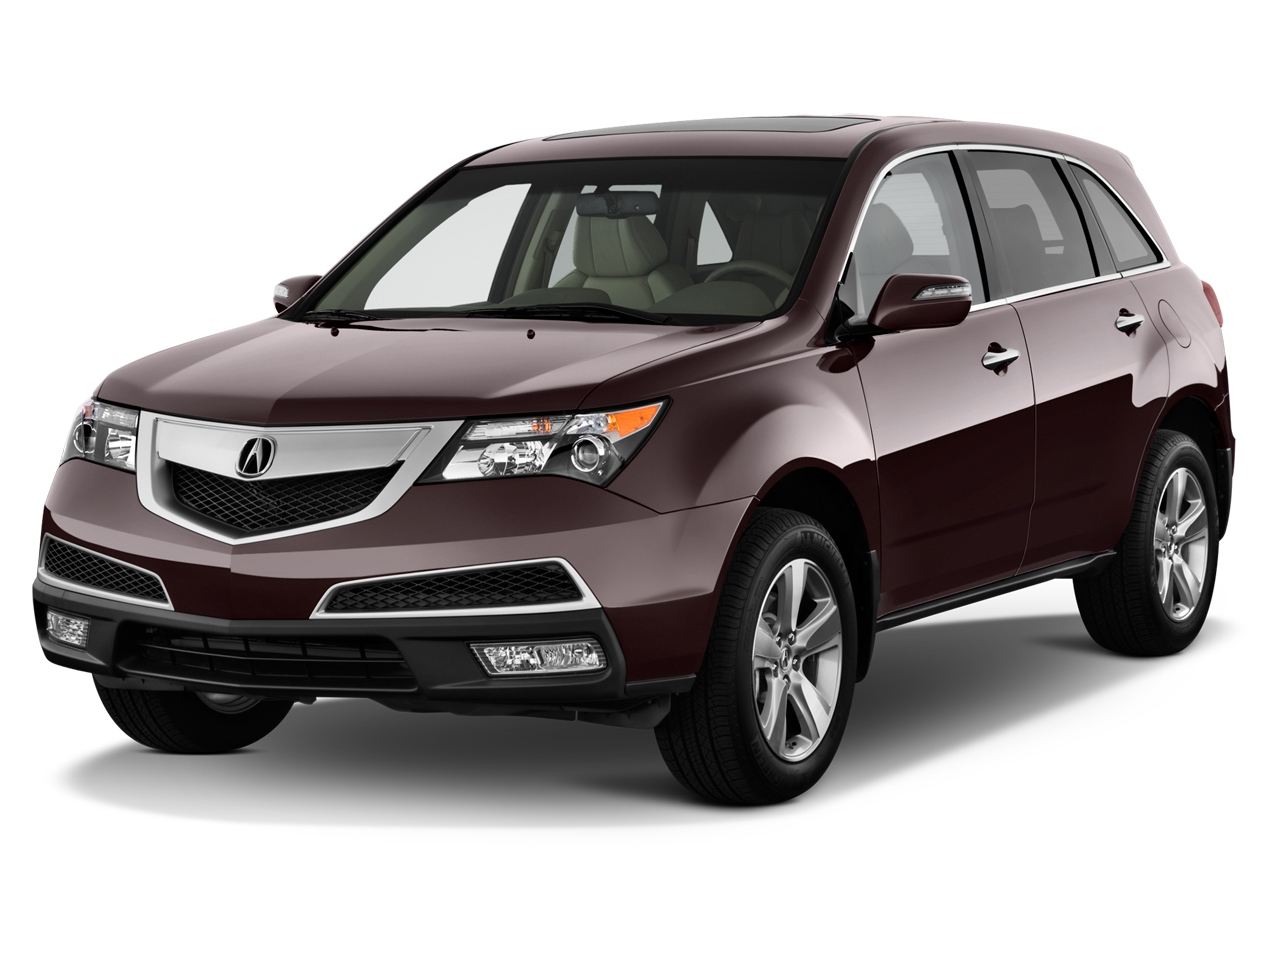 2013 Acura Mdx Review Ratings Specs Prices And Photos